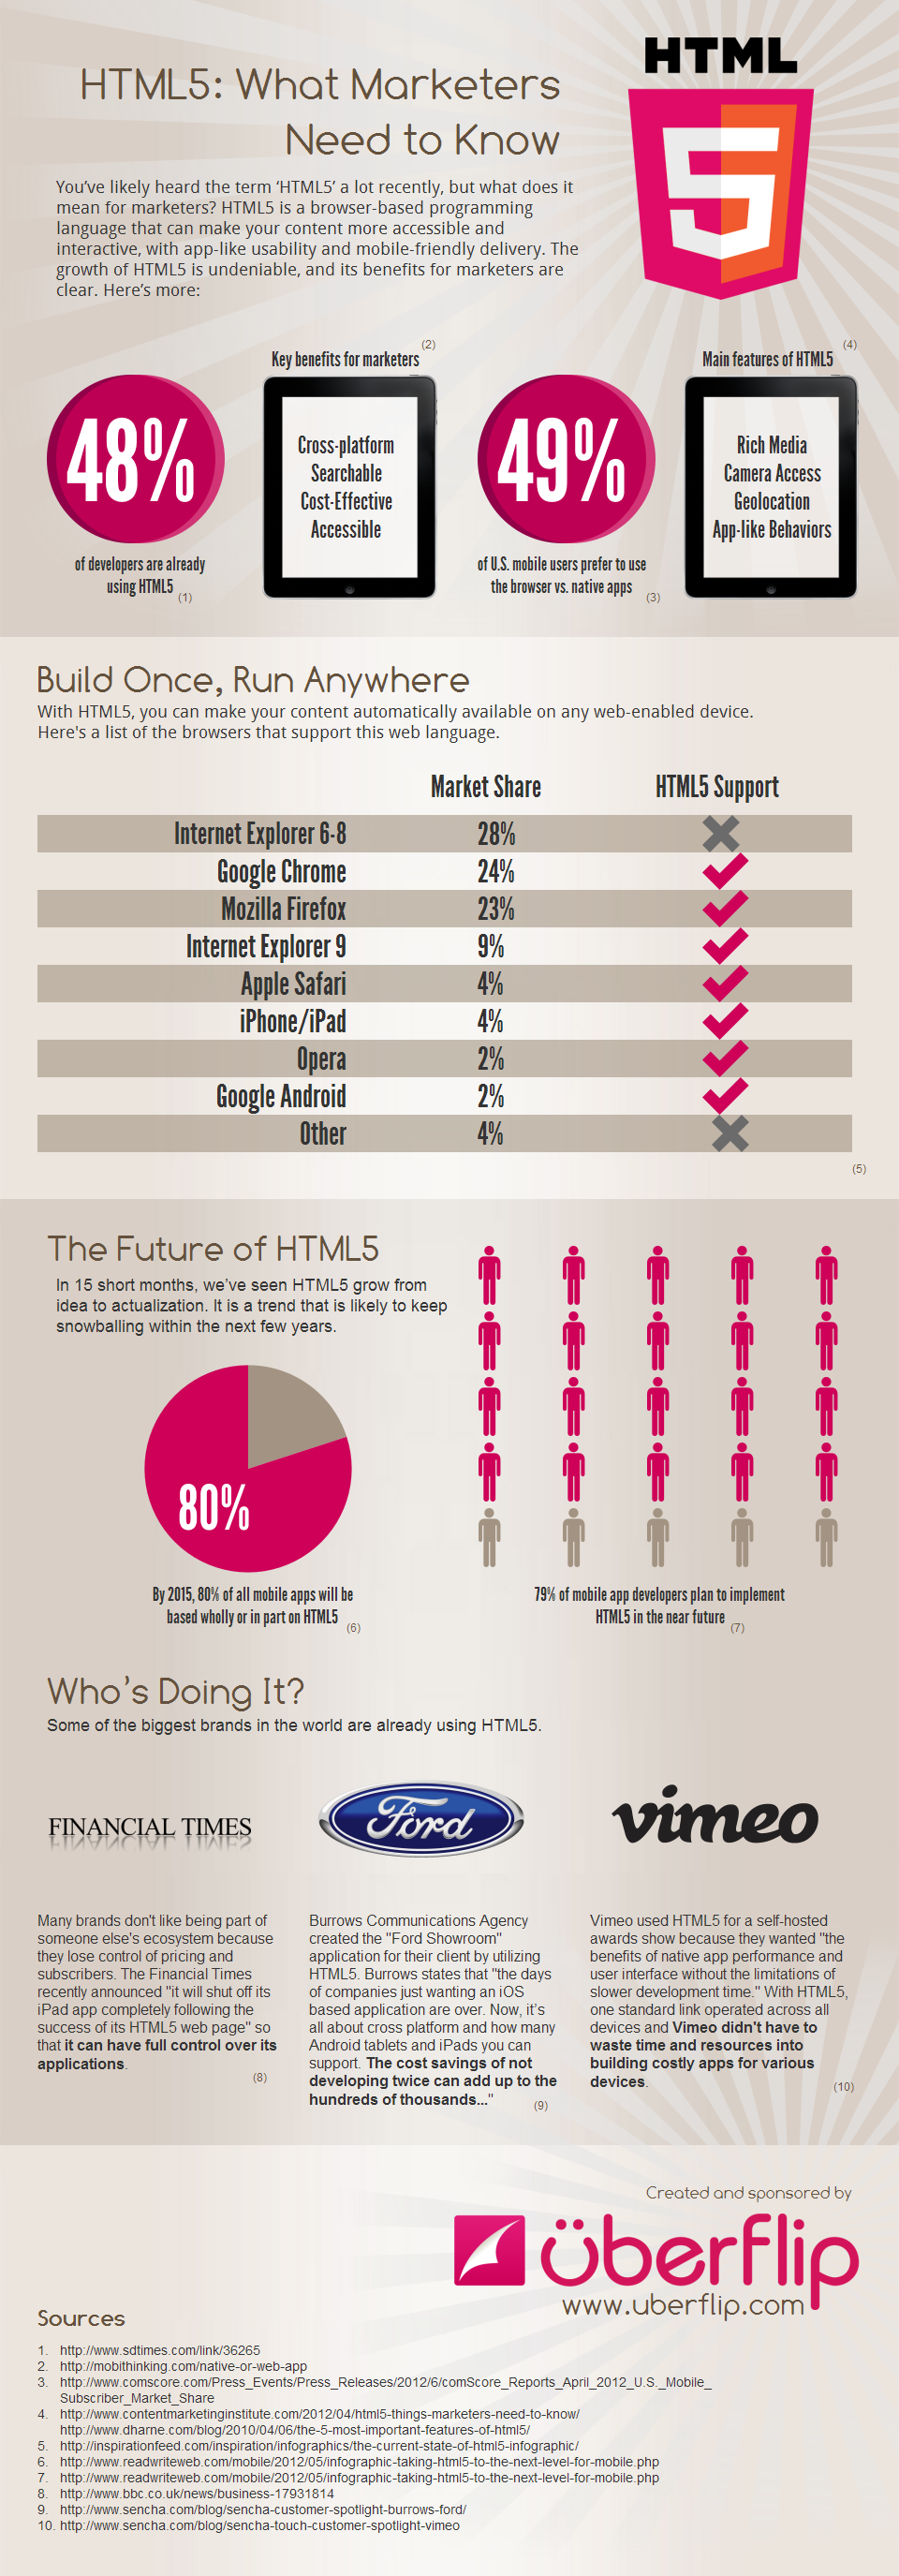 Html-5-For-Marketers-infographic